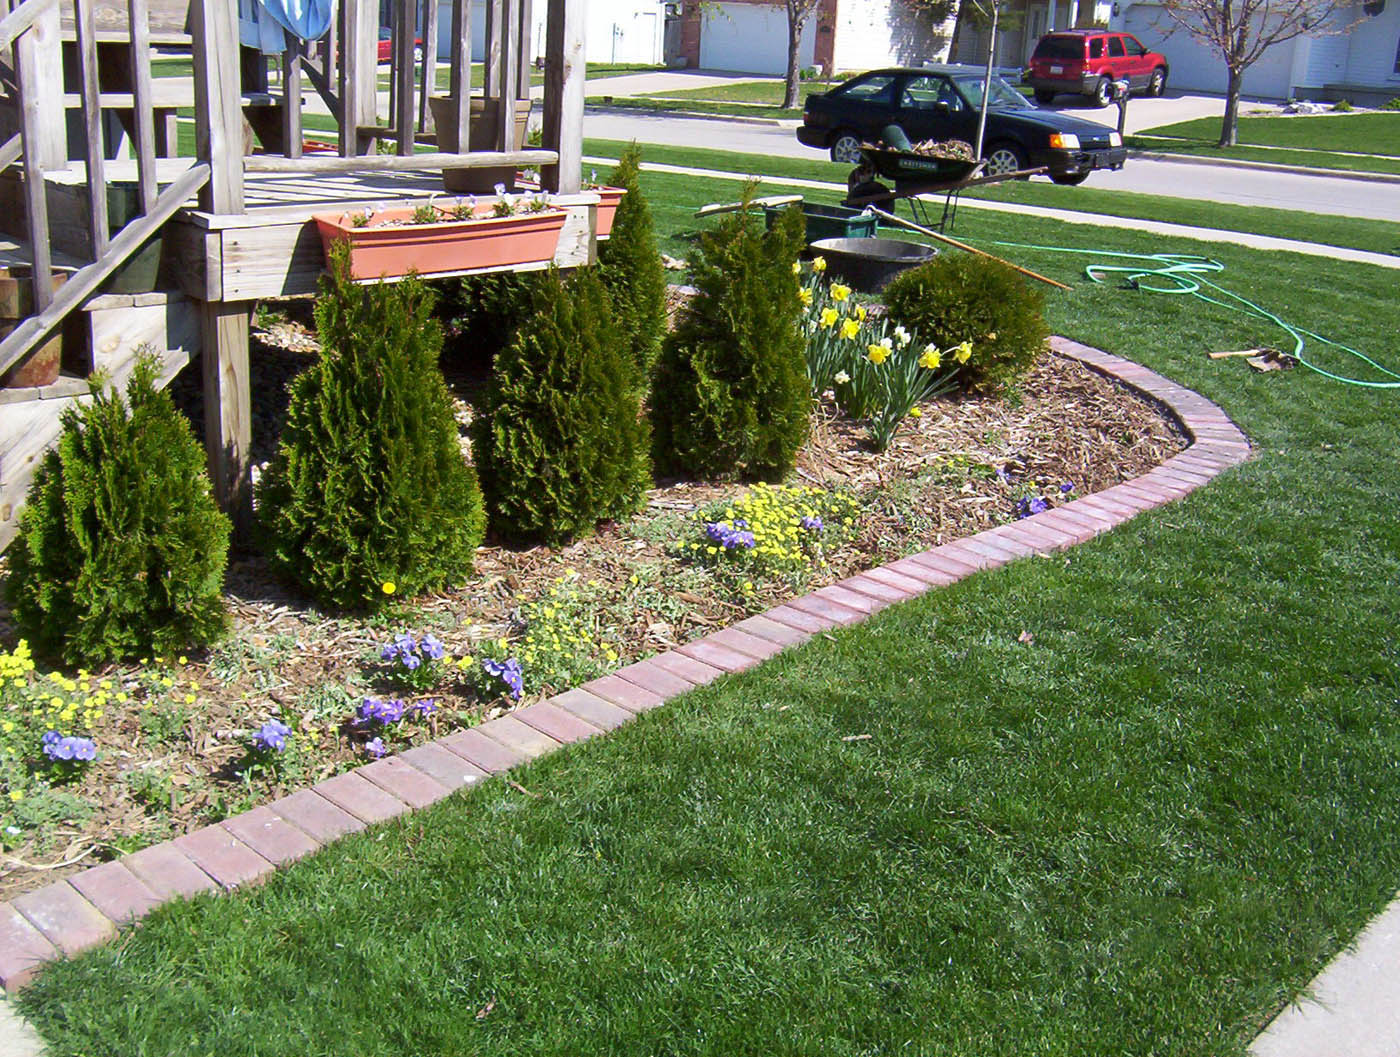 Home Depot Landscaping Blocks | Landscape Edging Lowes | Home Depot Landscape Edging